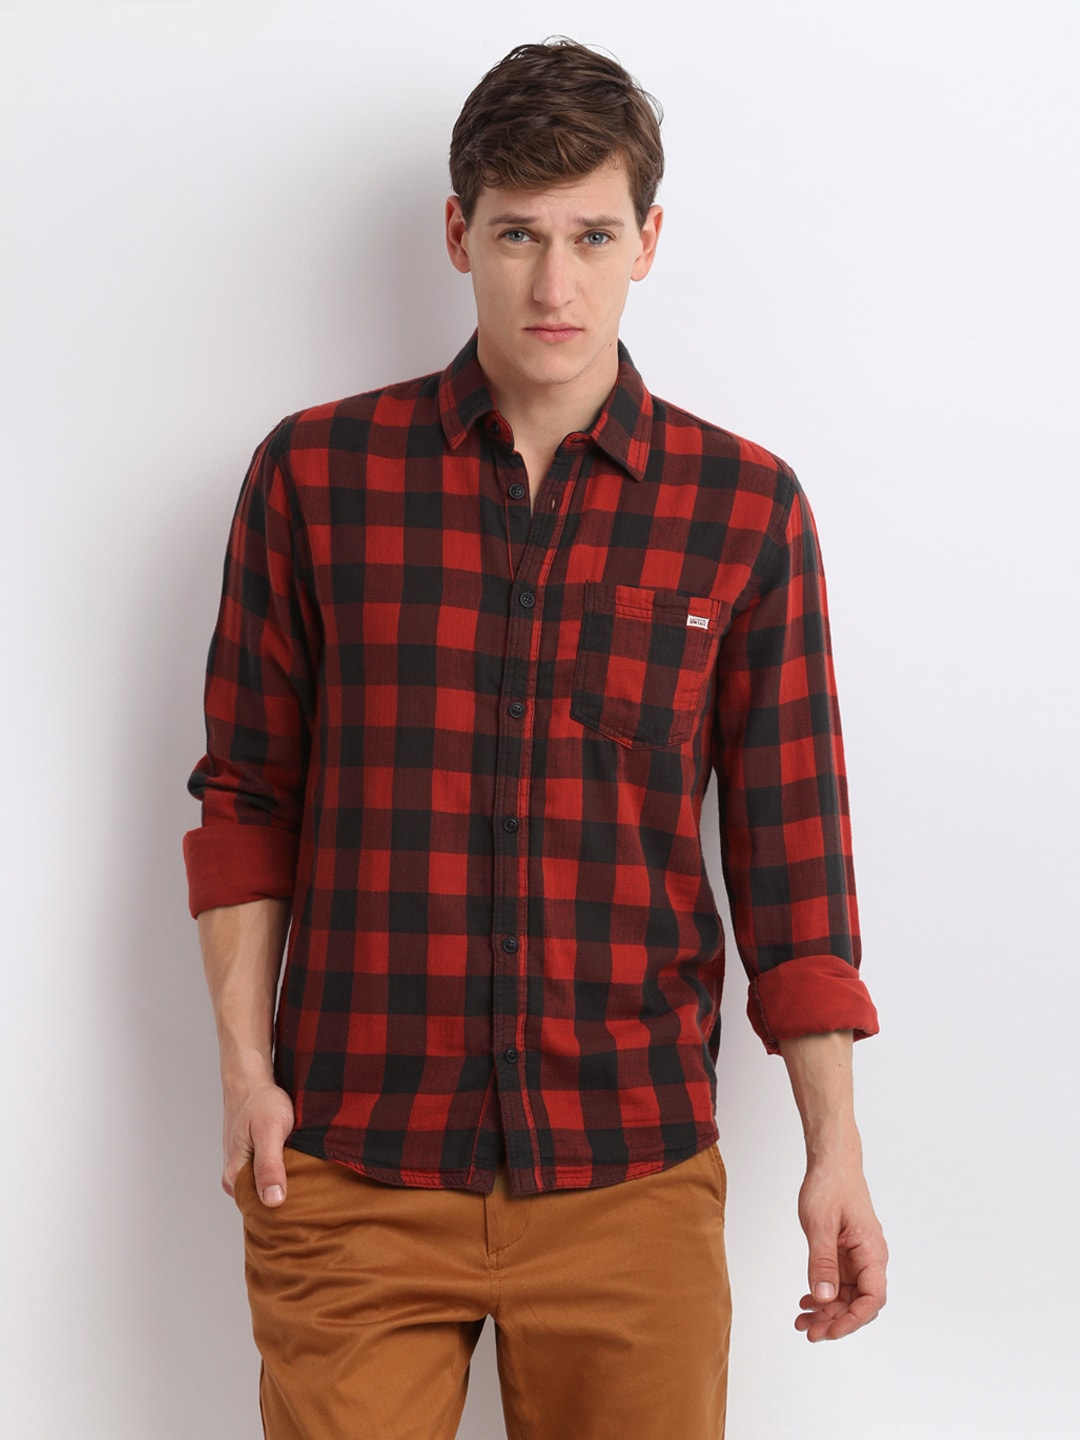 998b707b28 Jack and jones 1539920009 Men Red And Black Checked Slim Fit Casual Shirt-  Price in India